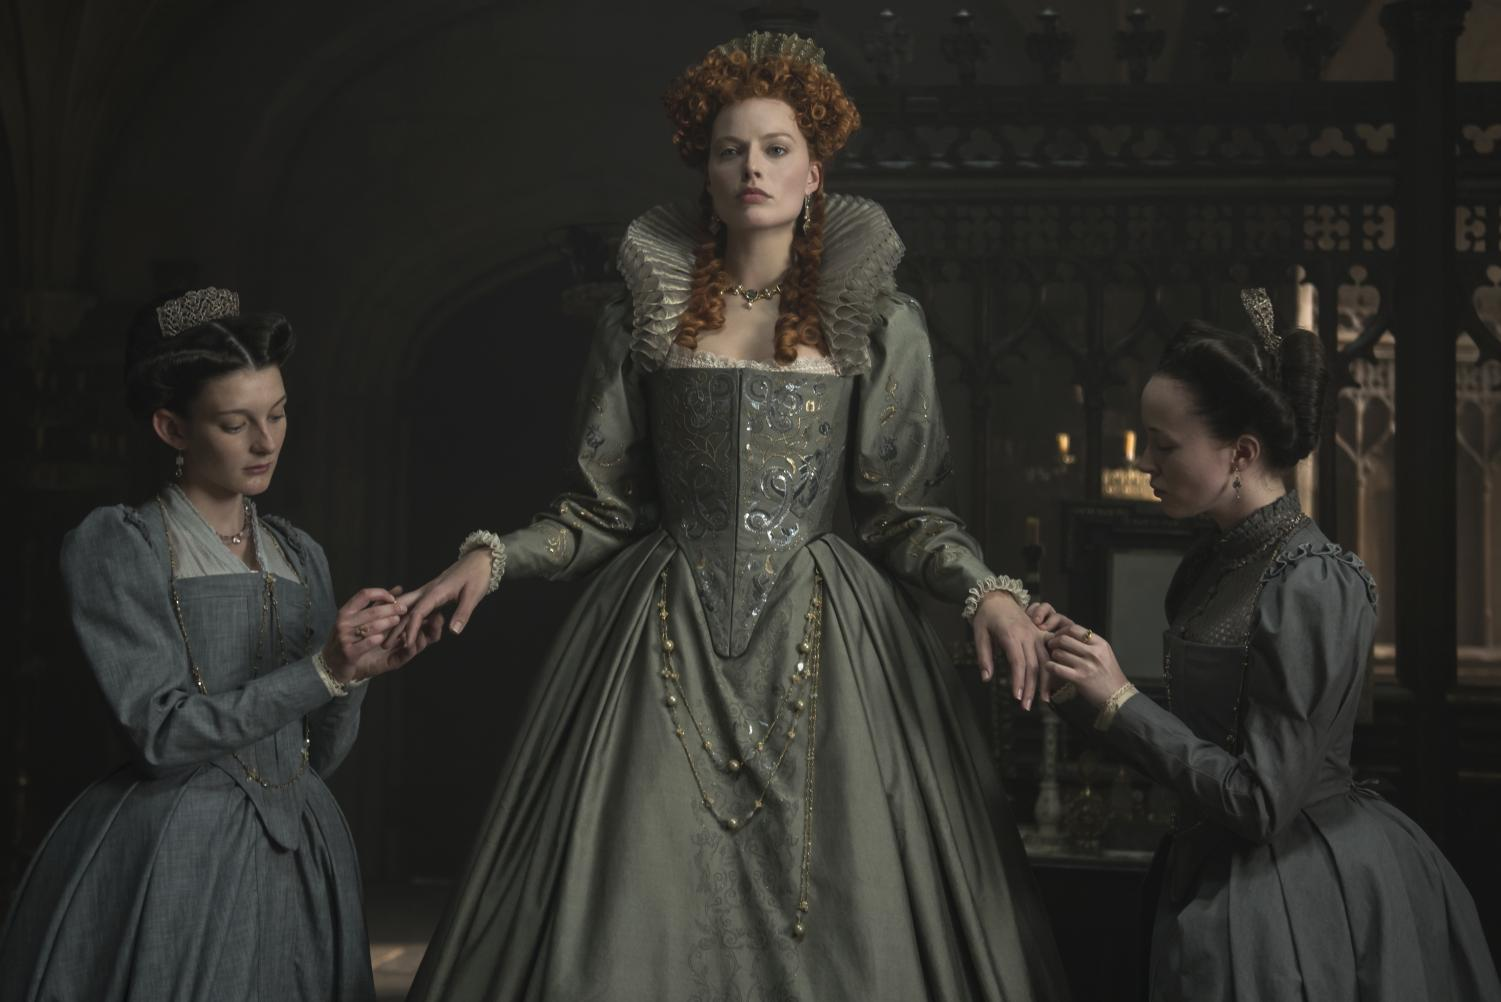 Mary Queen of Scots will be released in the UK on January 18.  The film was released on December 7, 2018 in the US, grossing only around $11 million, less than half of the $25 million budget.